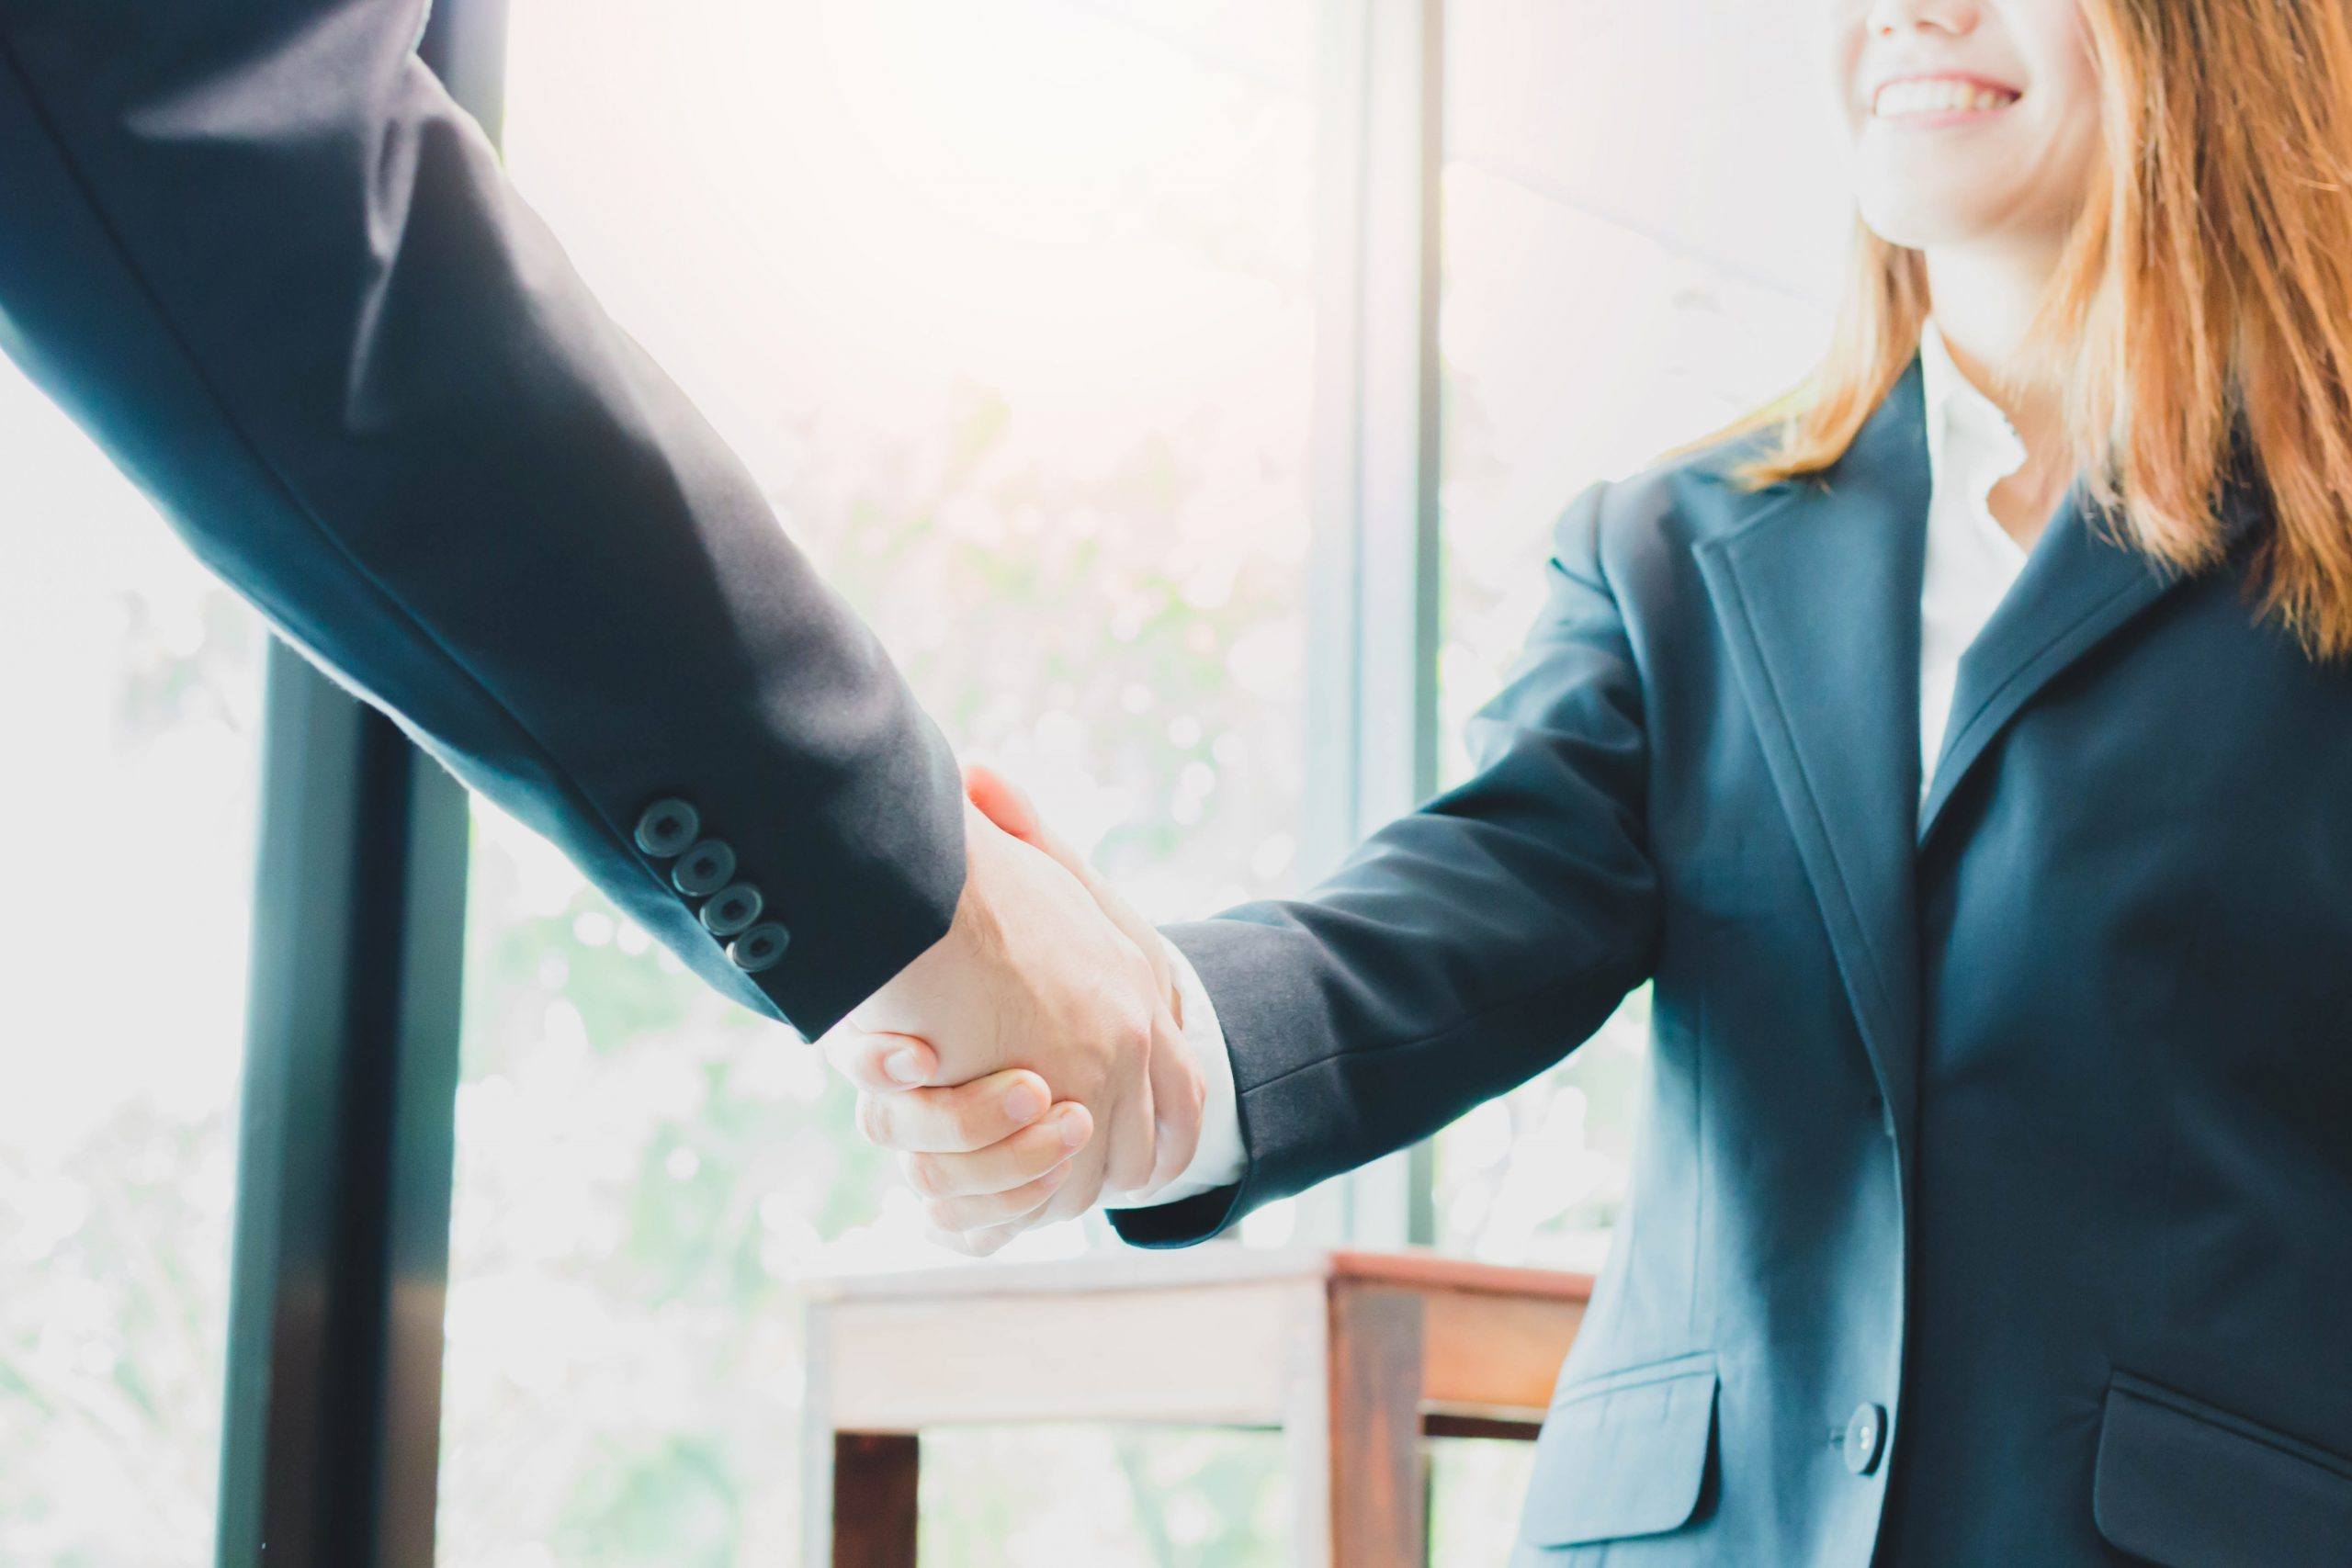 Getting the first job offer - the handshake that launches many great careers